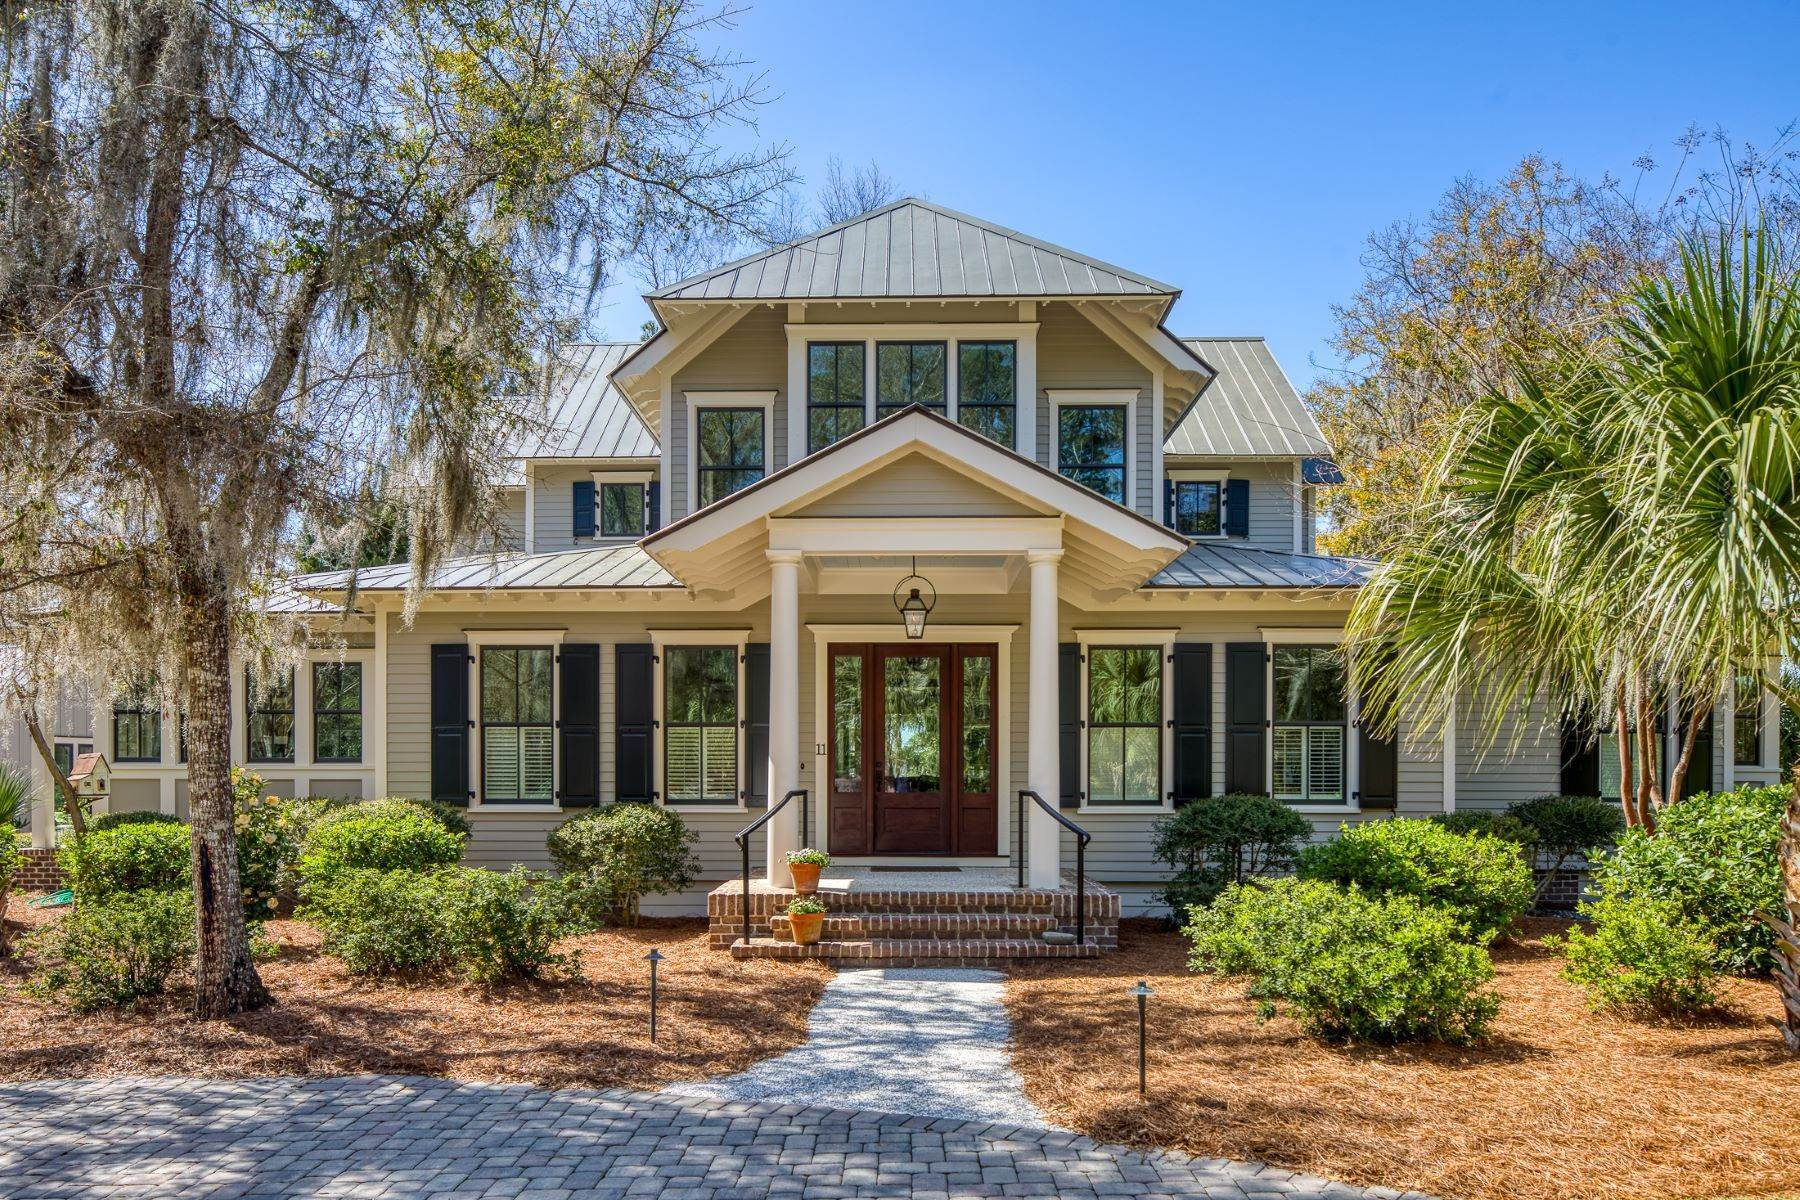 Property for Sale at Peaceful Private Retreat 11 Dutch House Circle Bluffton, South Carolina 29910 United States